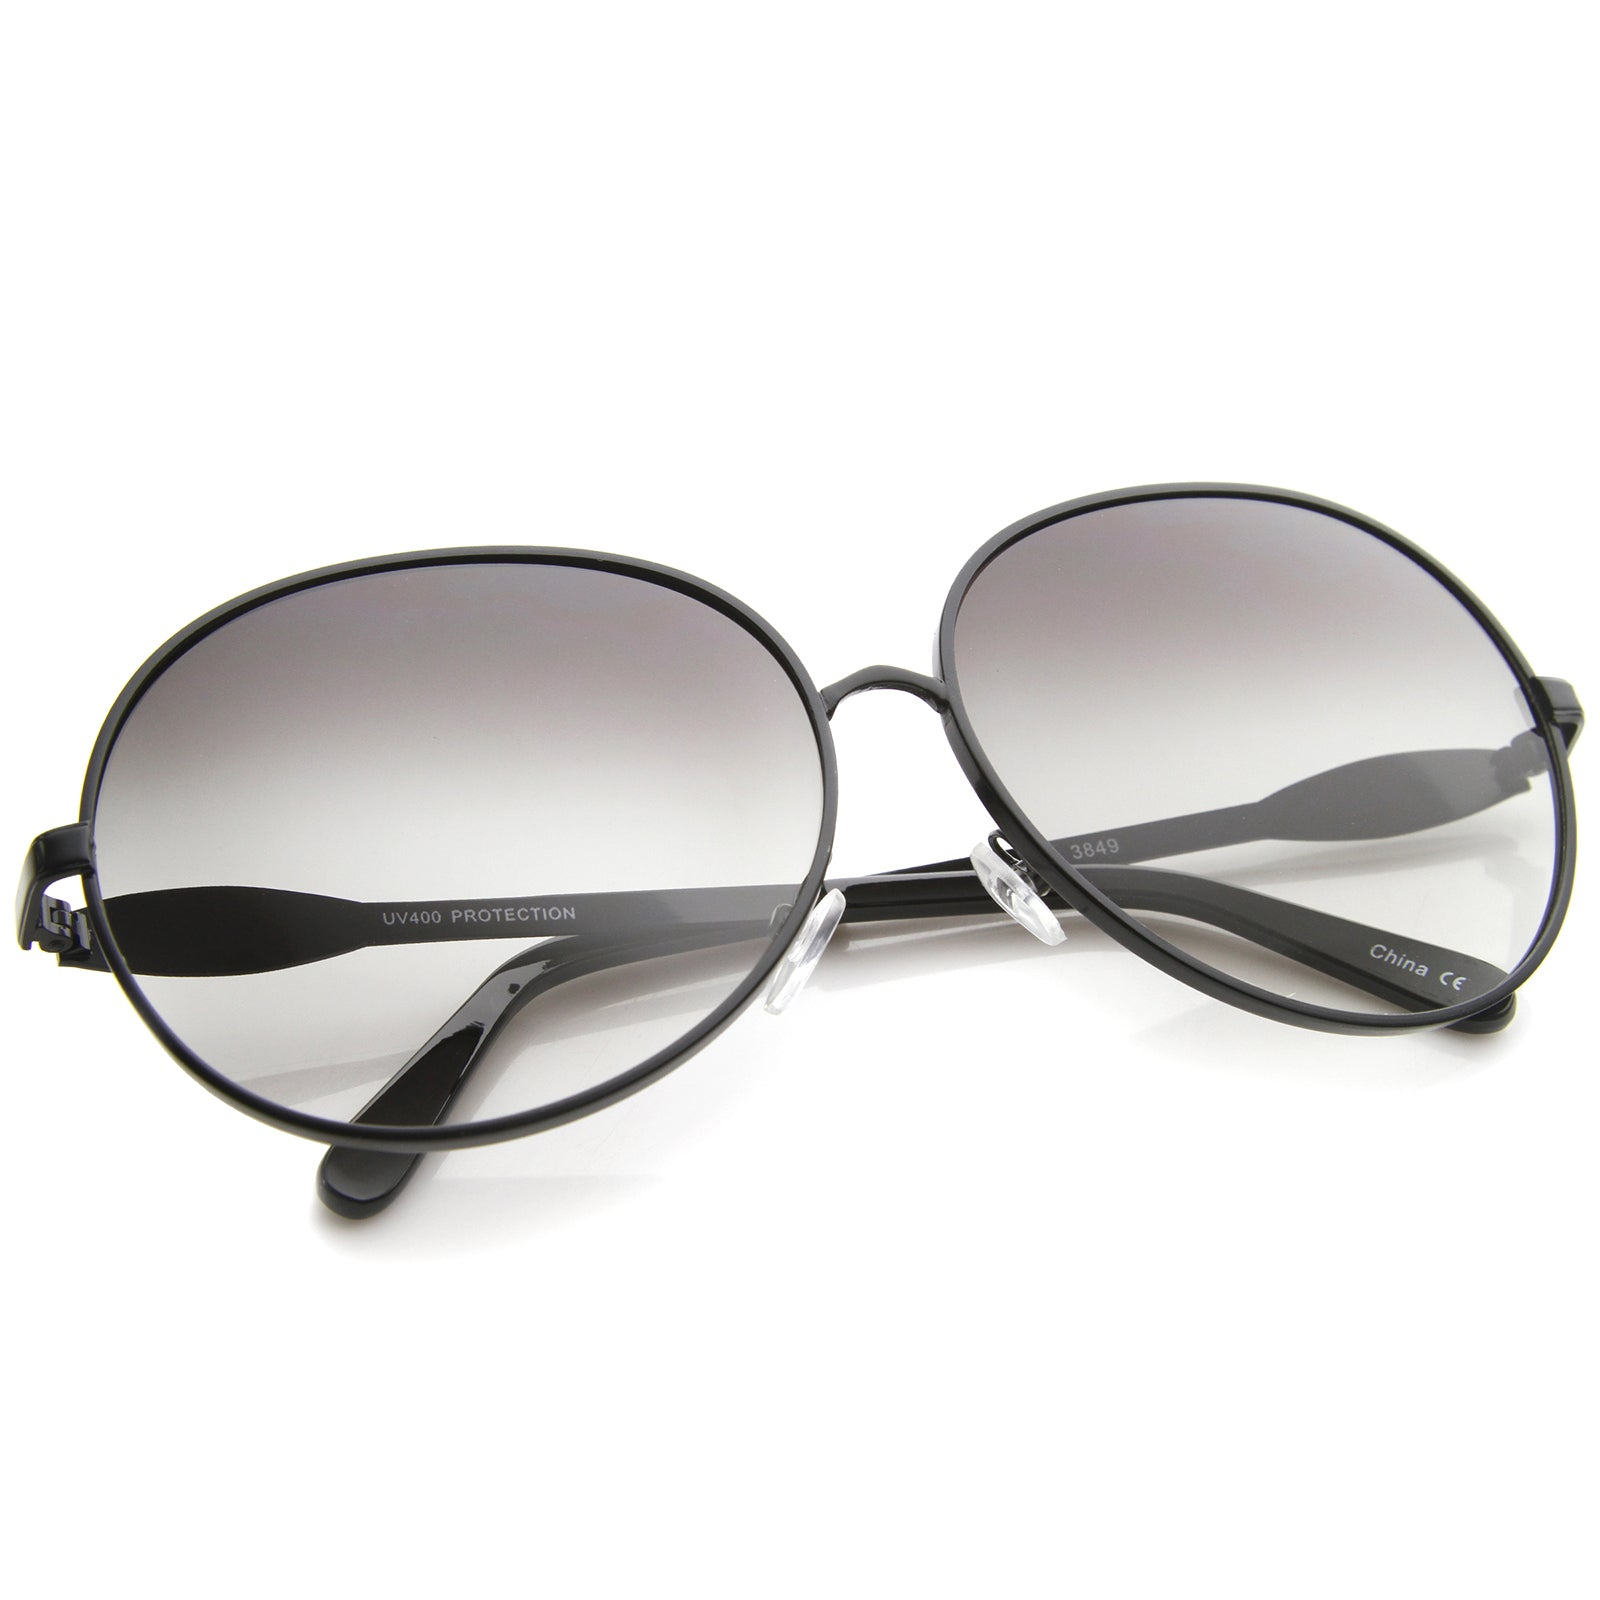 Womens Glam Full Metal Frame Oversized Round Sunglasses 63mm - sunglass.la - 4